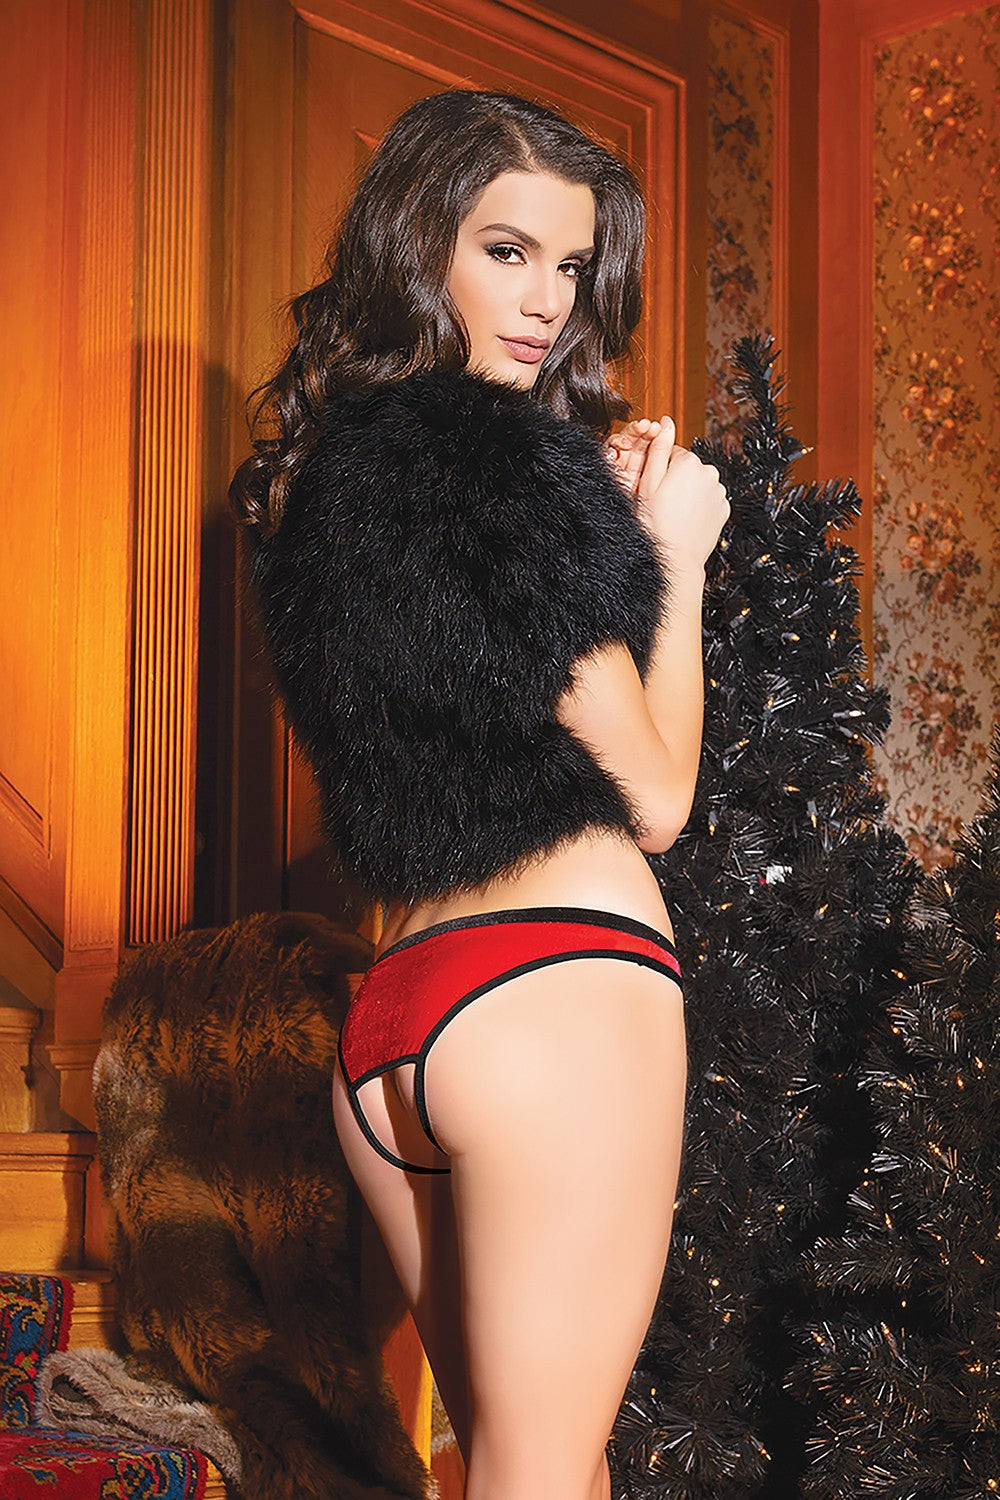 Red Velvet Holiday Crotchless Panty (3763)